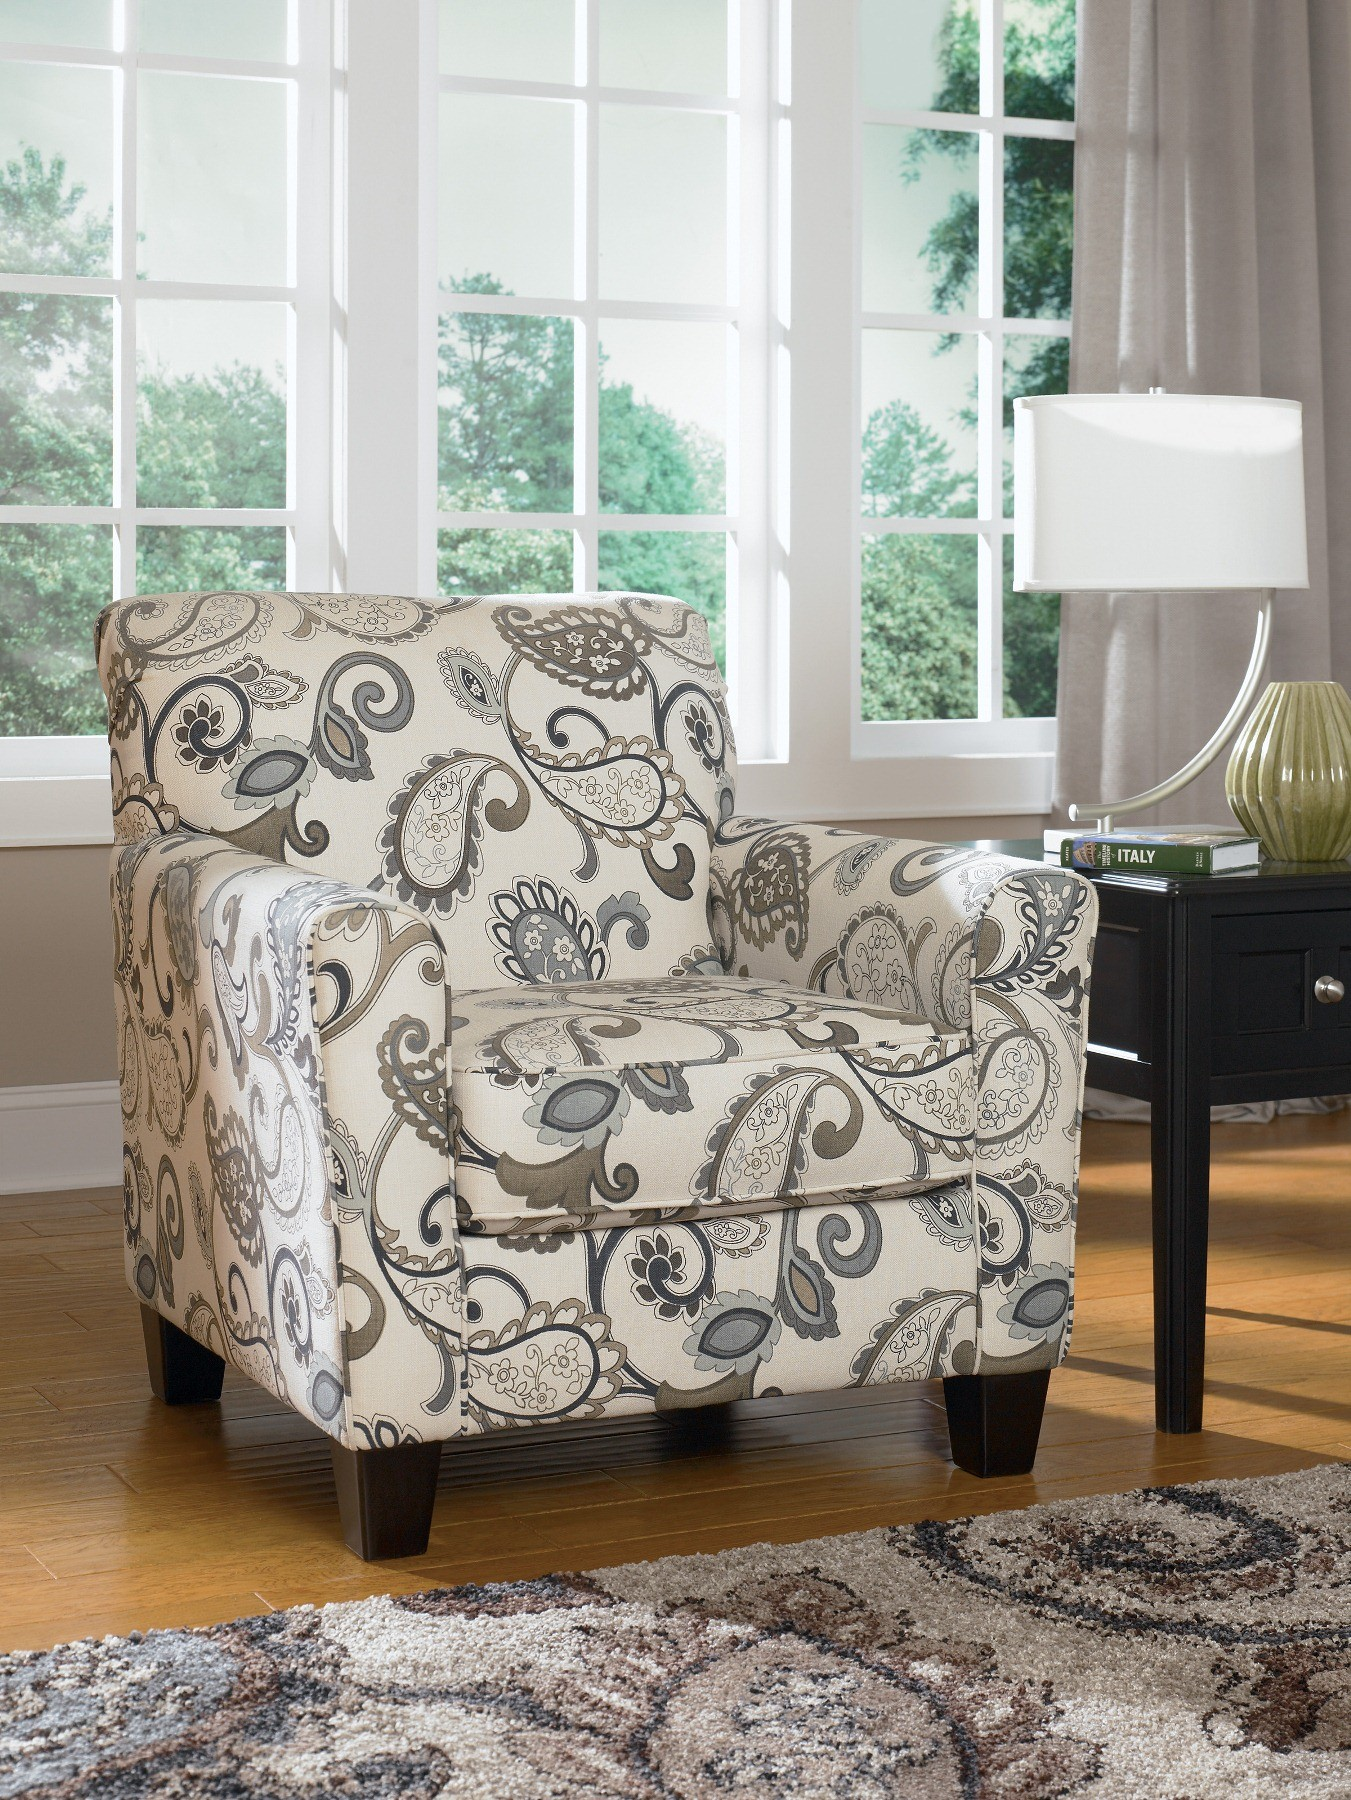 Ashley Furniture Accent Chair Yvette Steel Accent Chair From Ashley 7790021 Coleman